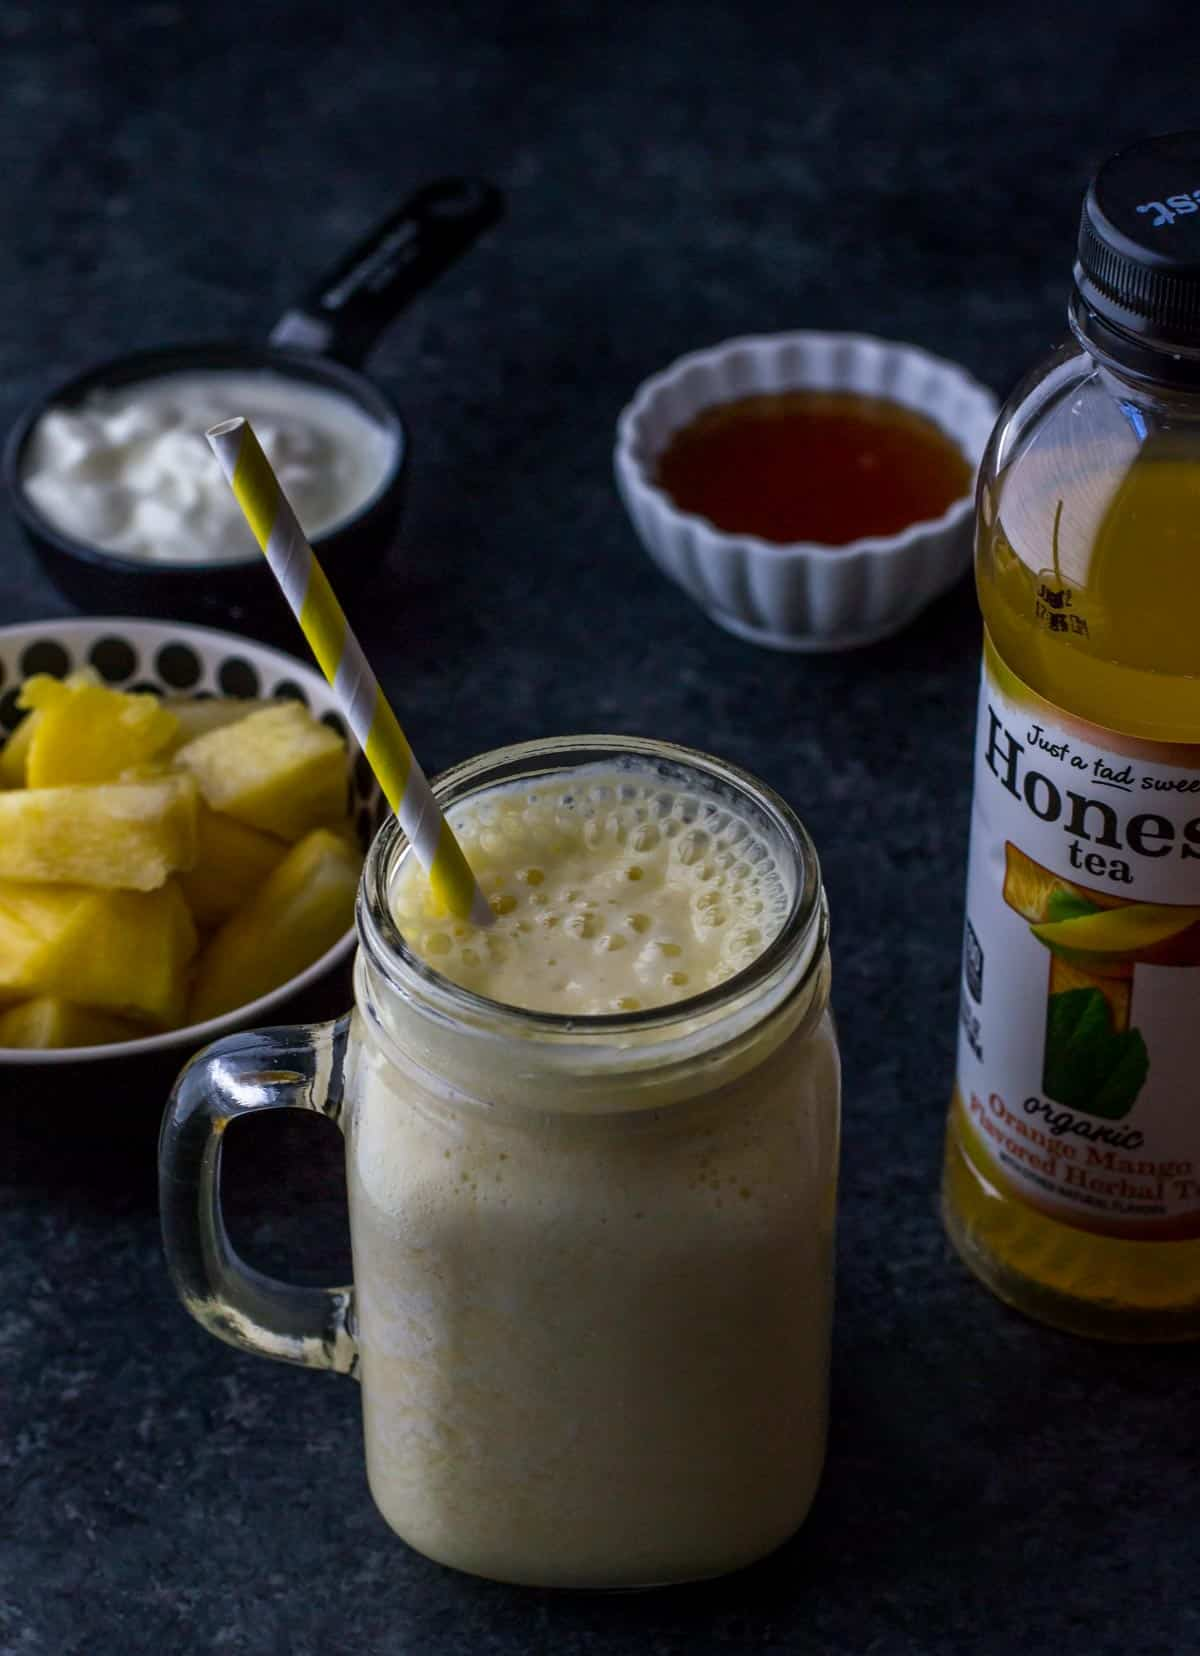 Pineapple orange mango smoothie served in a glass jar with a yellow straw. You can also see a bowl of yogurt, honey and pineapple on the side along with a bottle of Honest Tea.